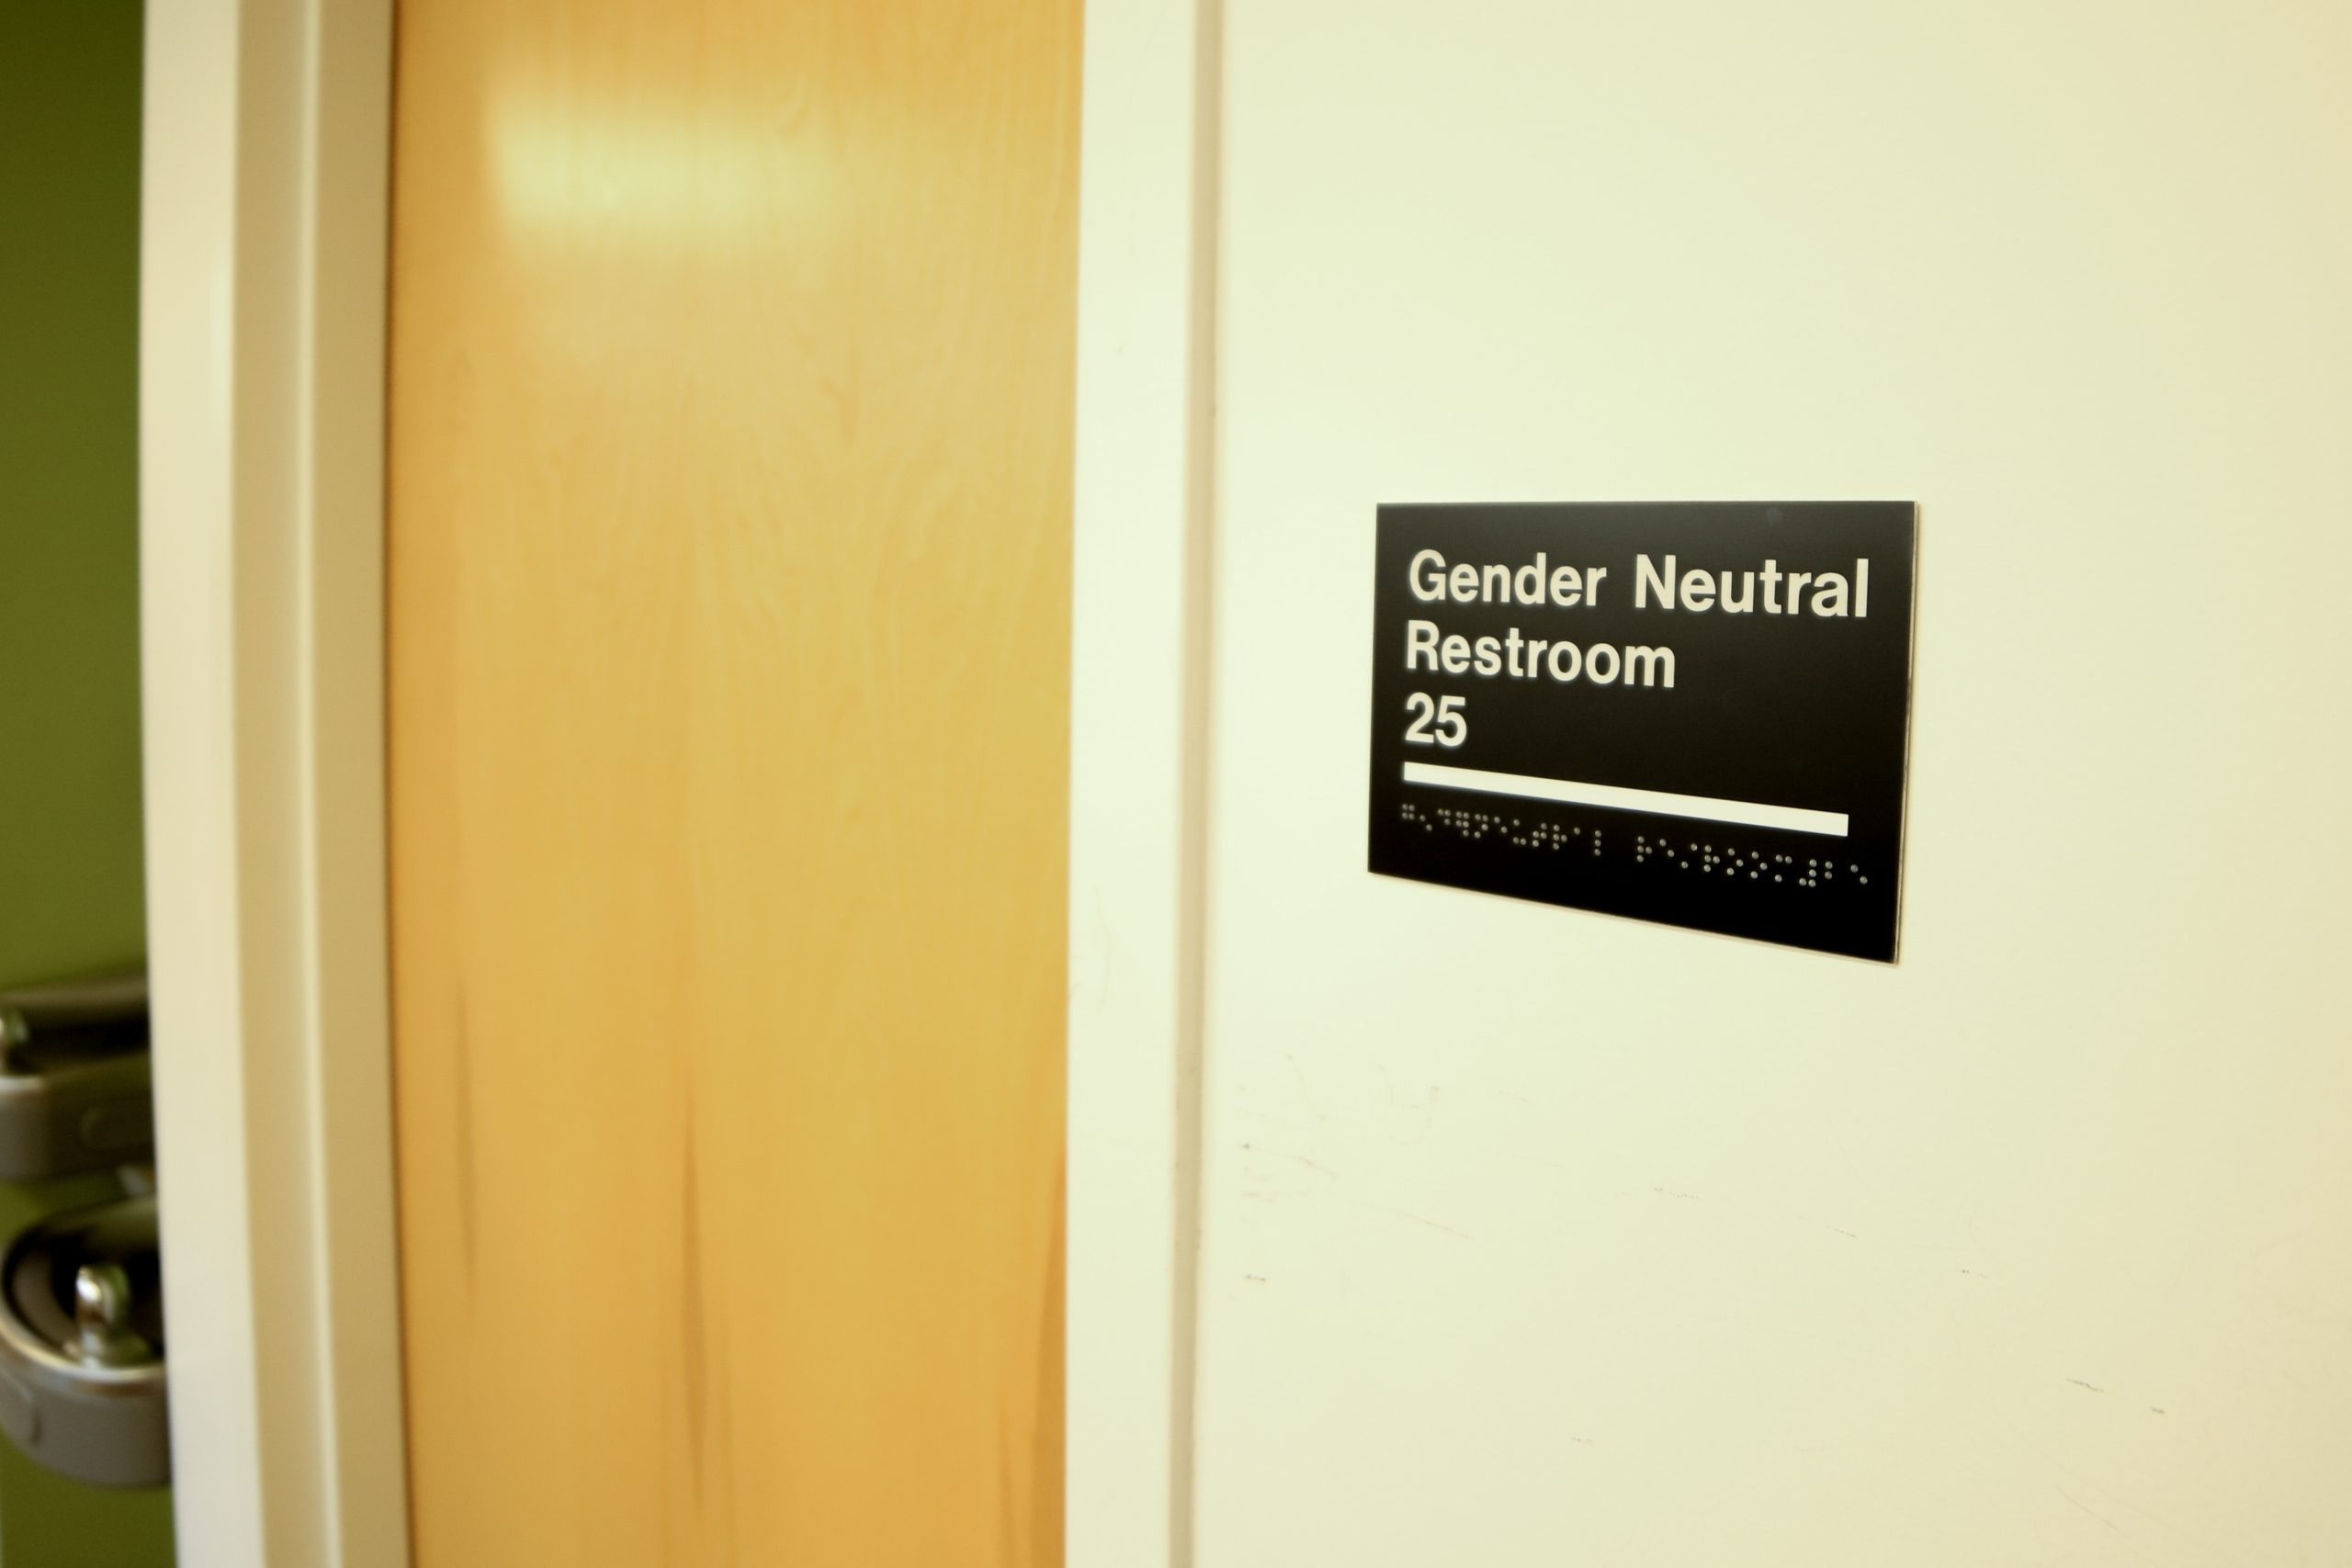 CSU Looks To Expand Allgender Bathrooms Despite Trumps Order The - Why gender neutral bathrooms are important